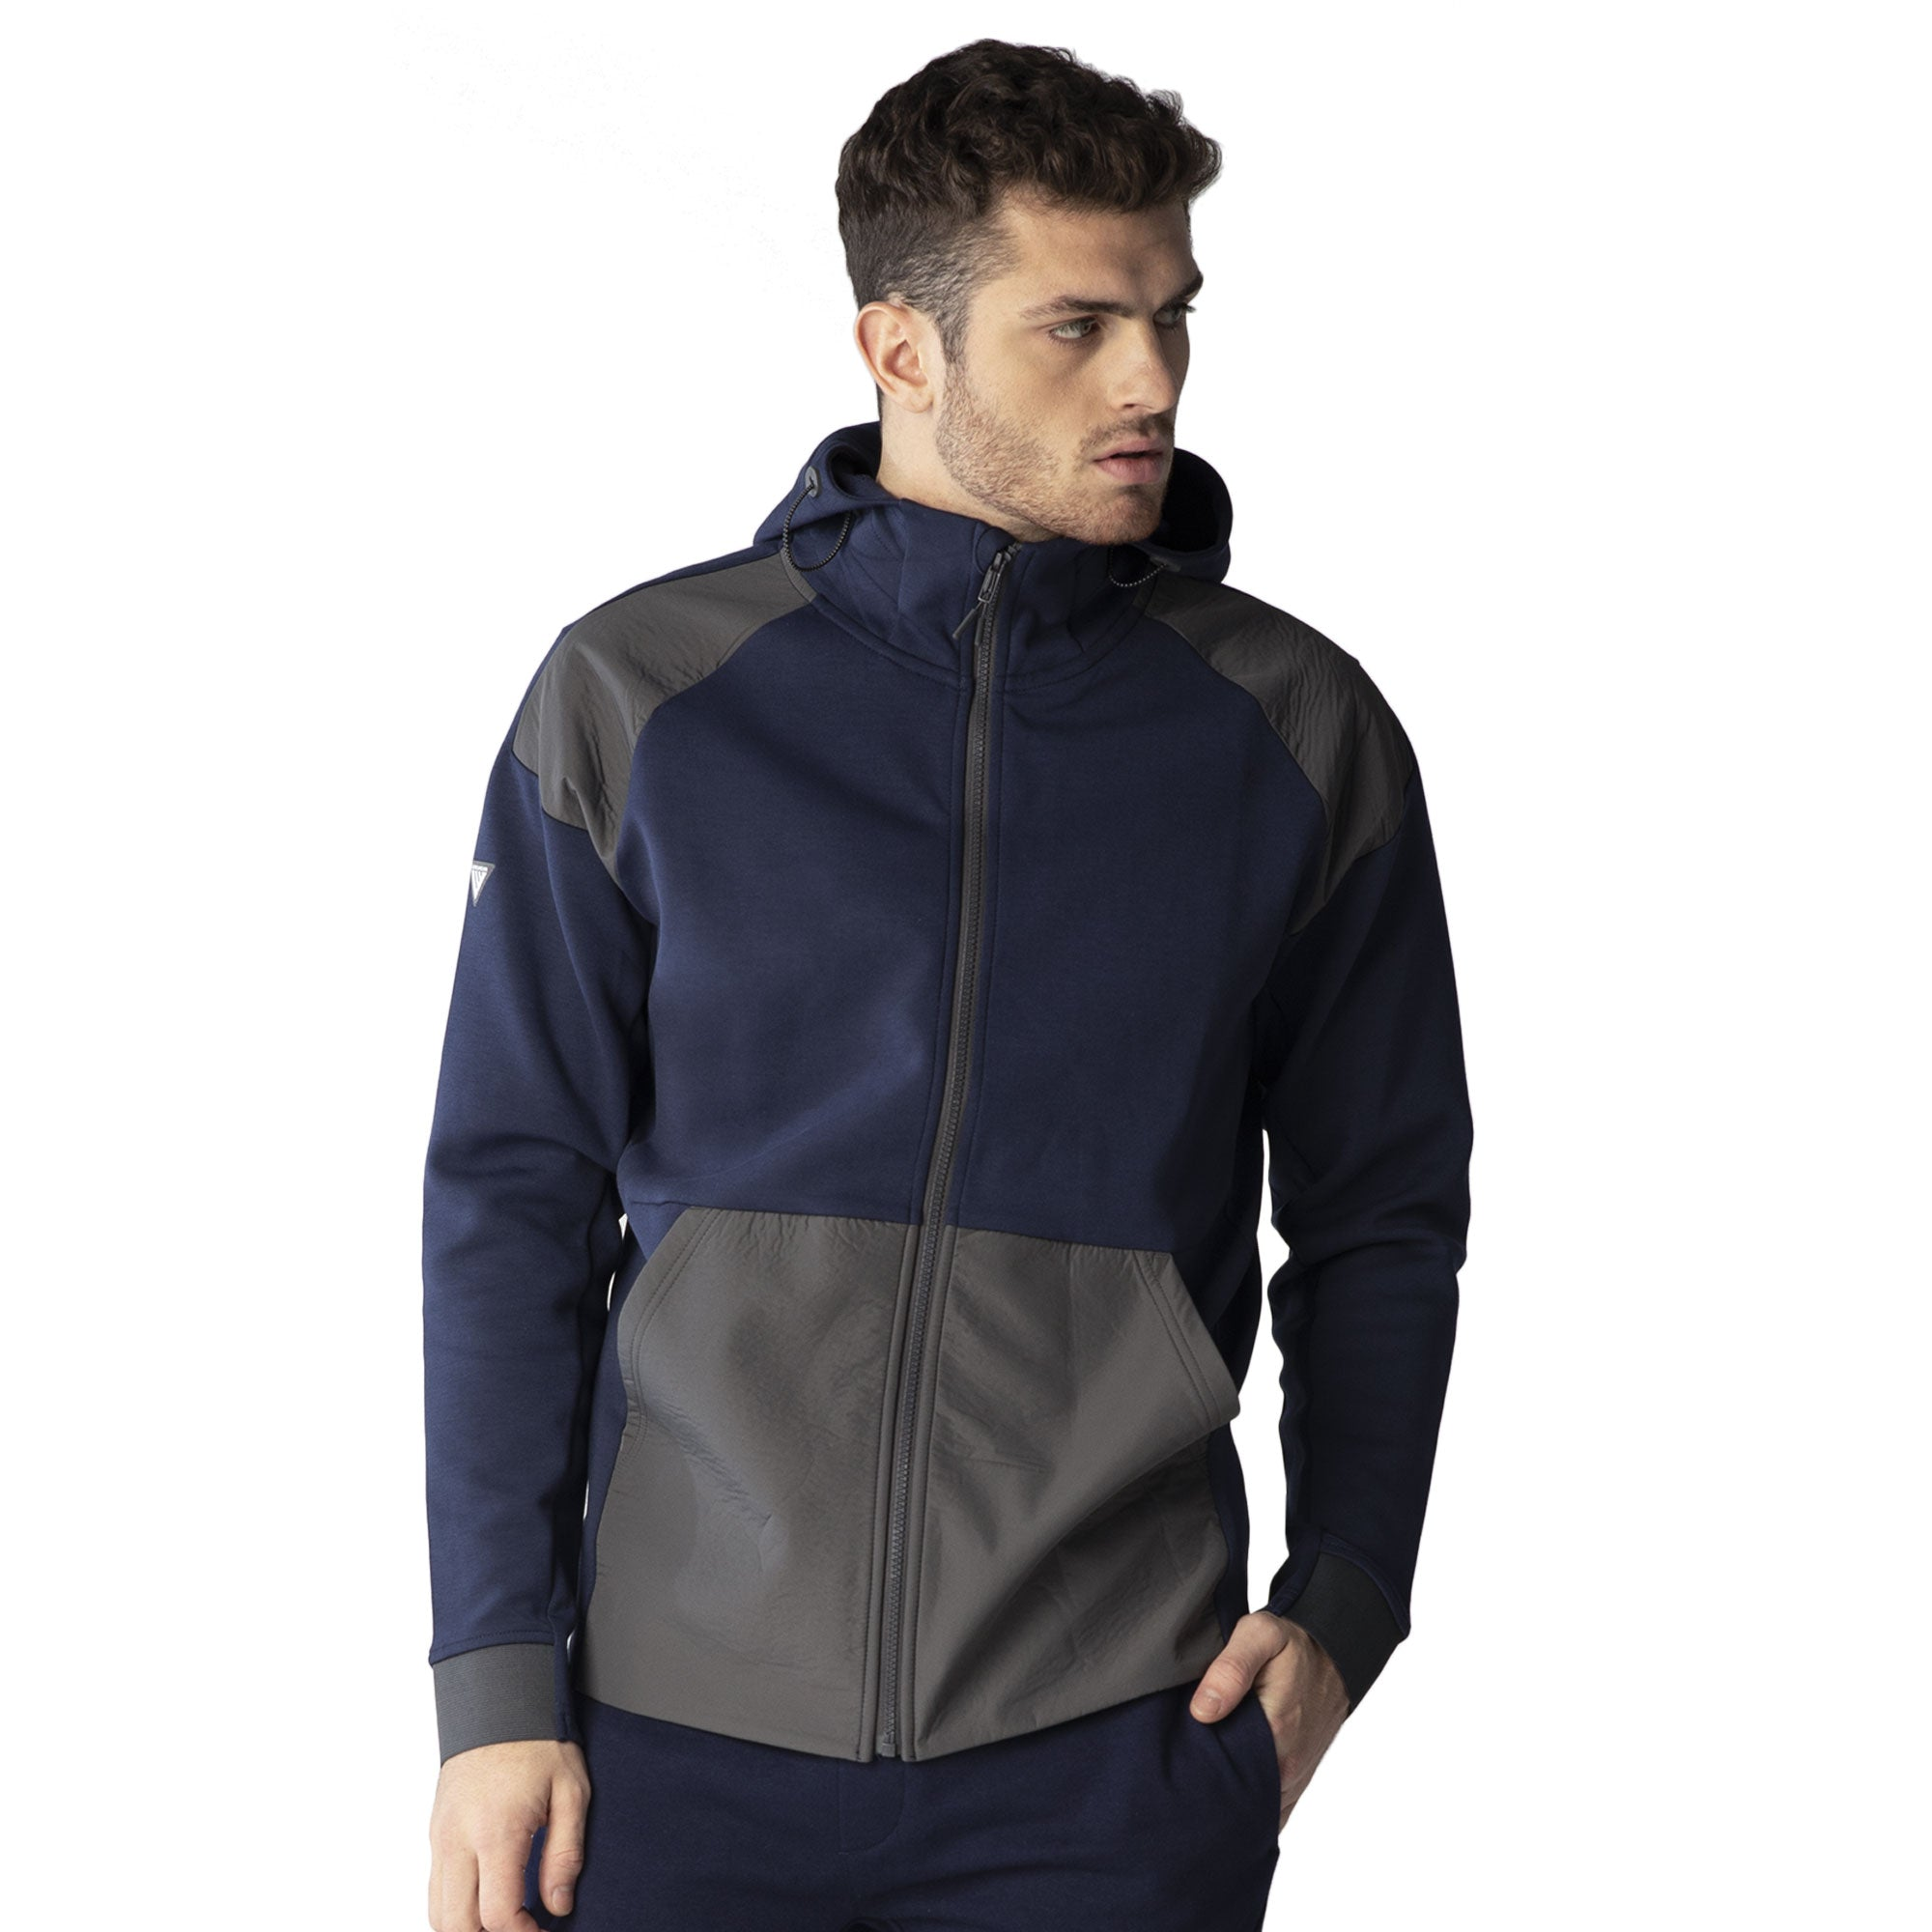 Levelwear Hatch Jacket